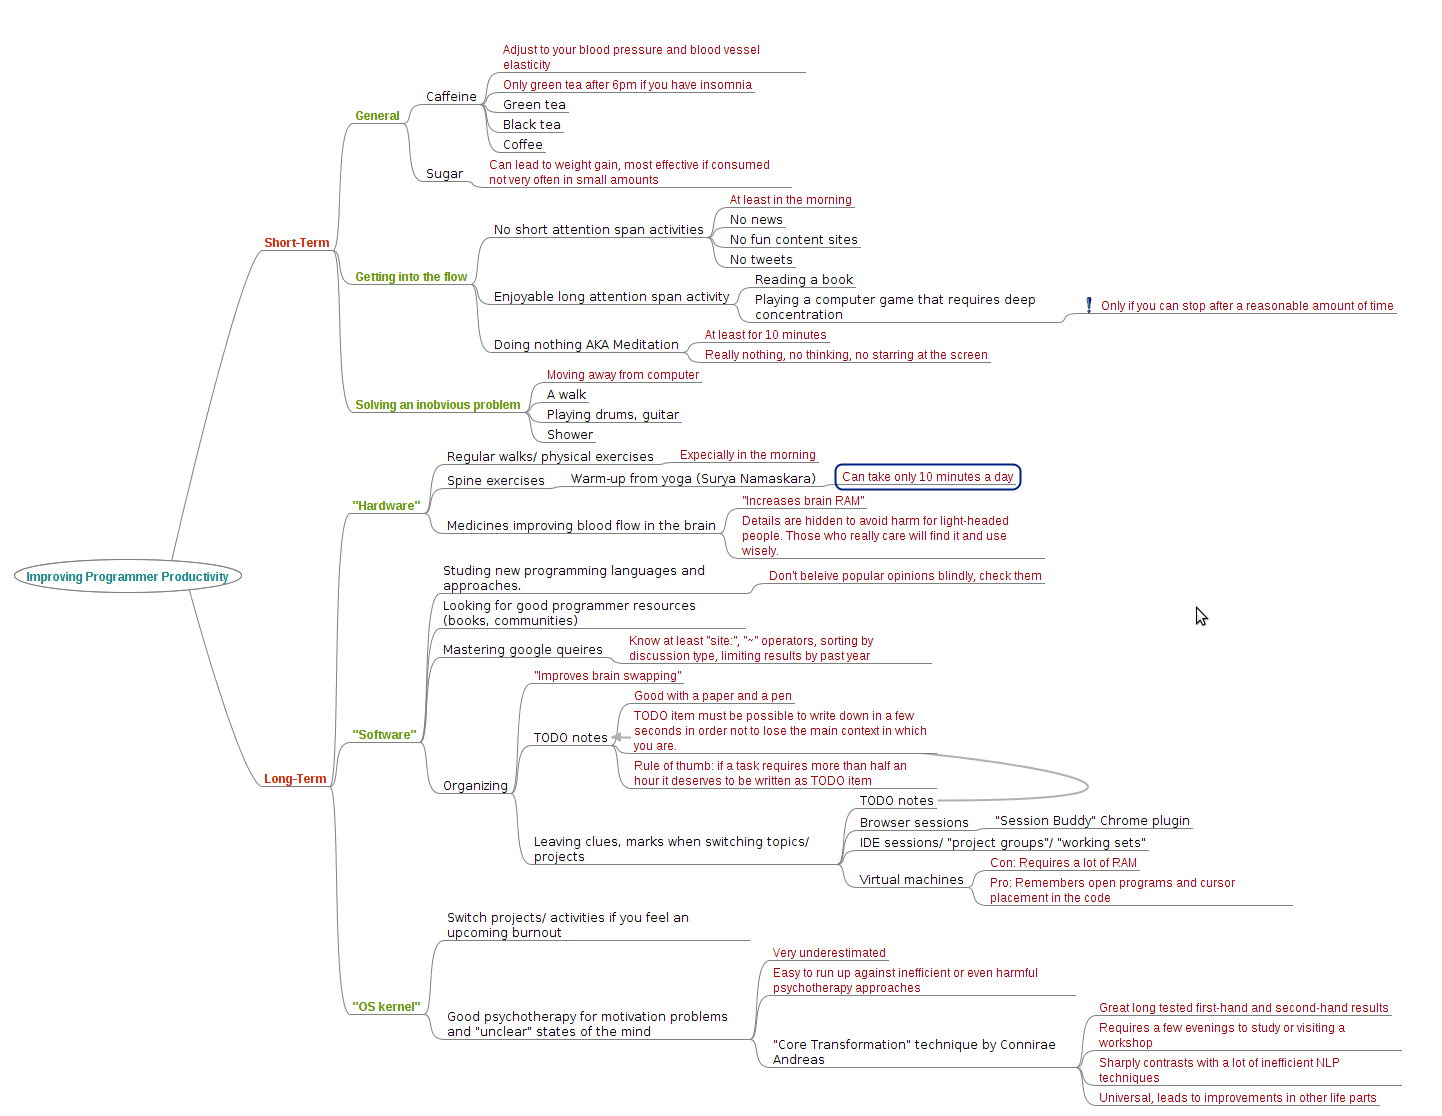 IT: Improving Programmer Productivity (Mind Map)